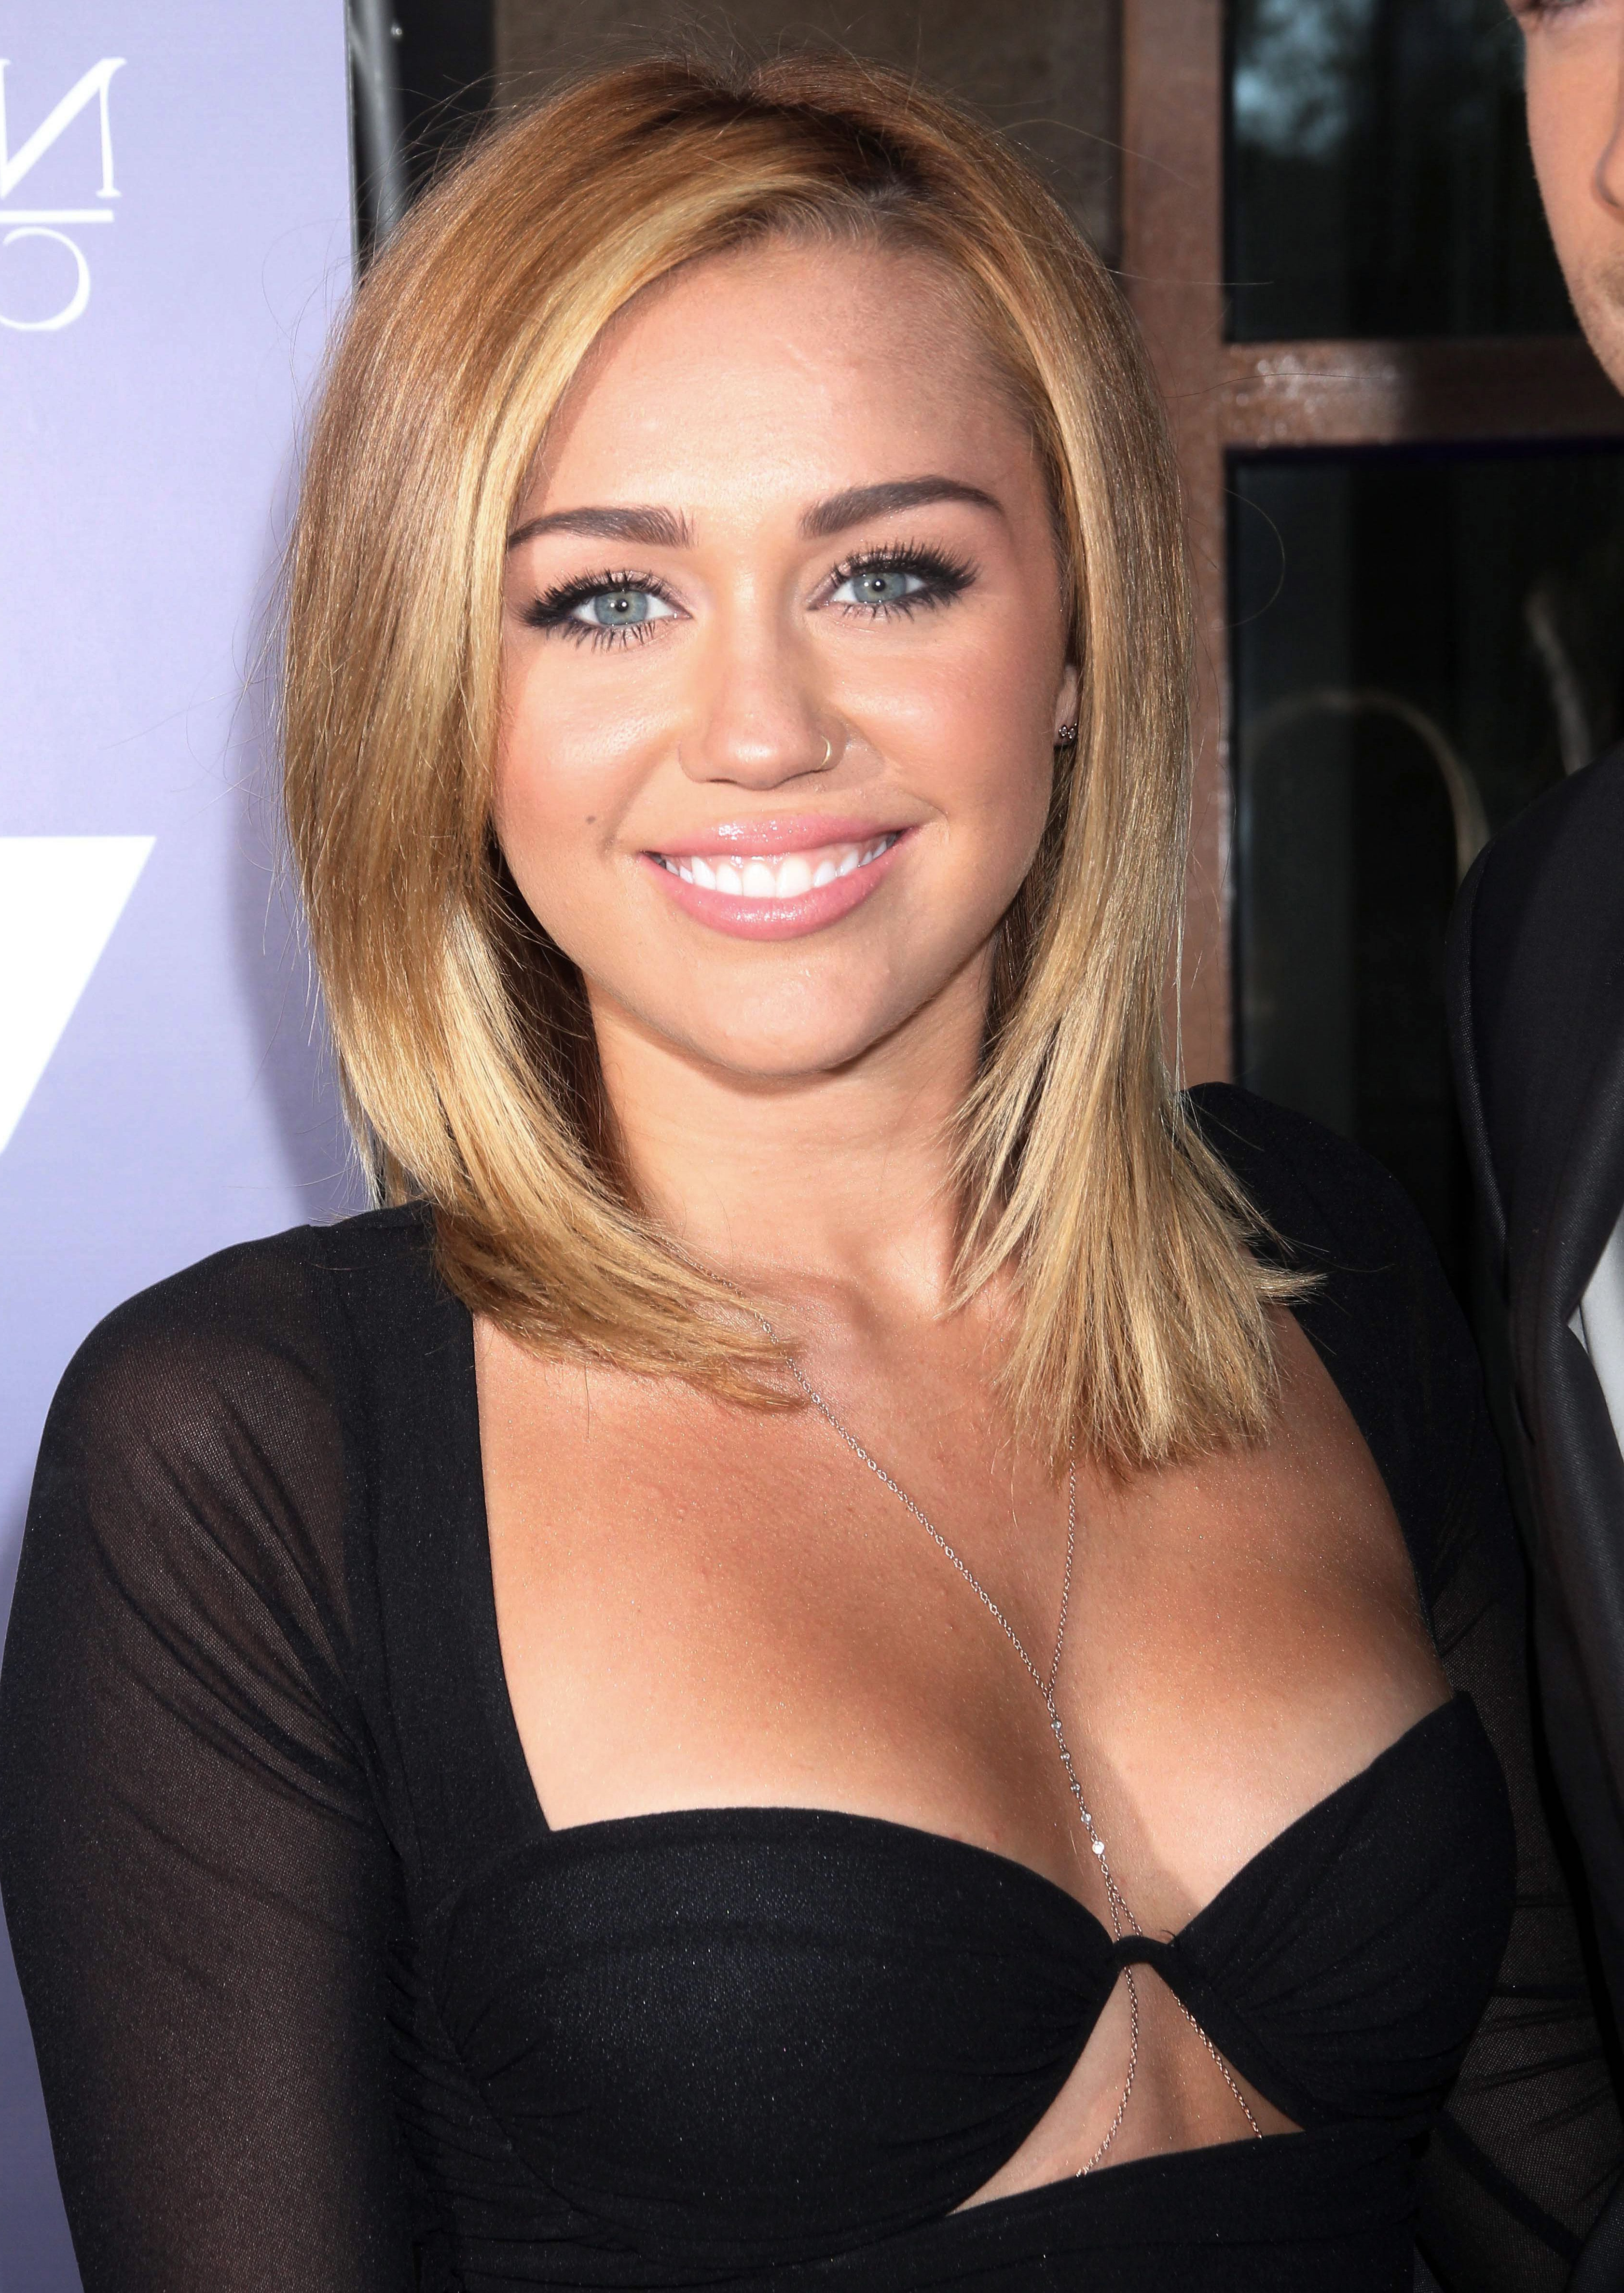 Famous Miley Cyrus Medium Hairstyles With Which Miley Cyrus Are You? (View 4 of 20)